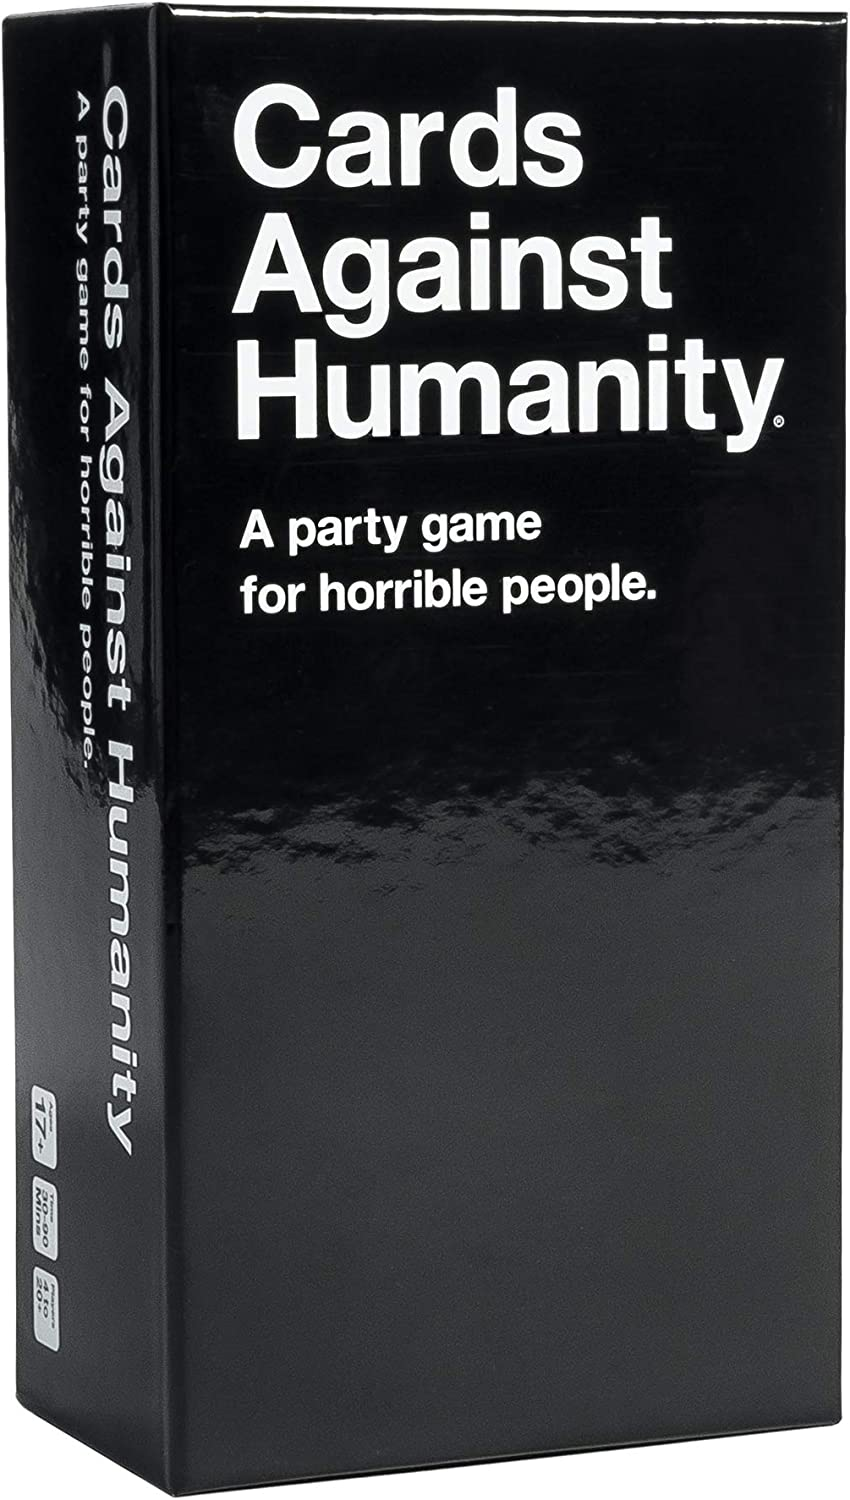 Cards Against Humanity: Toys & Games